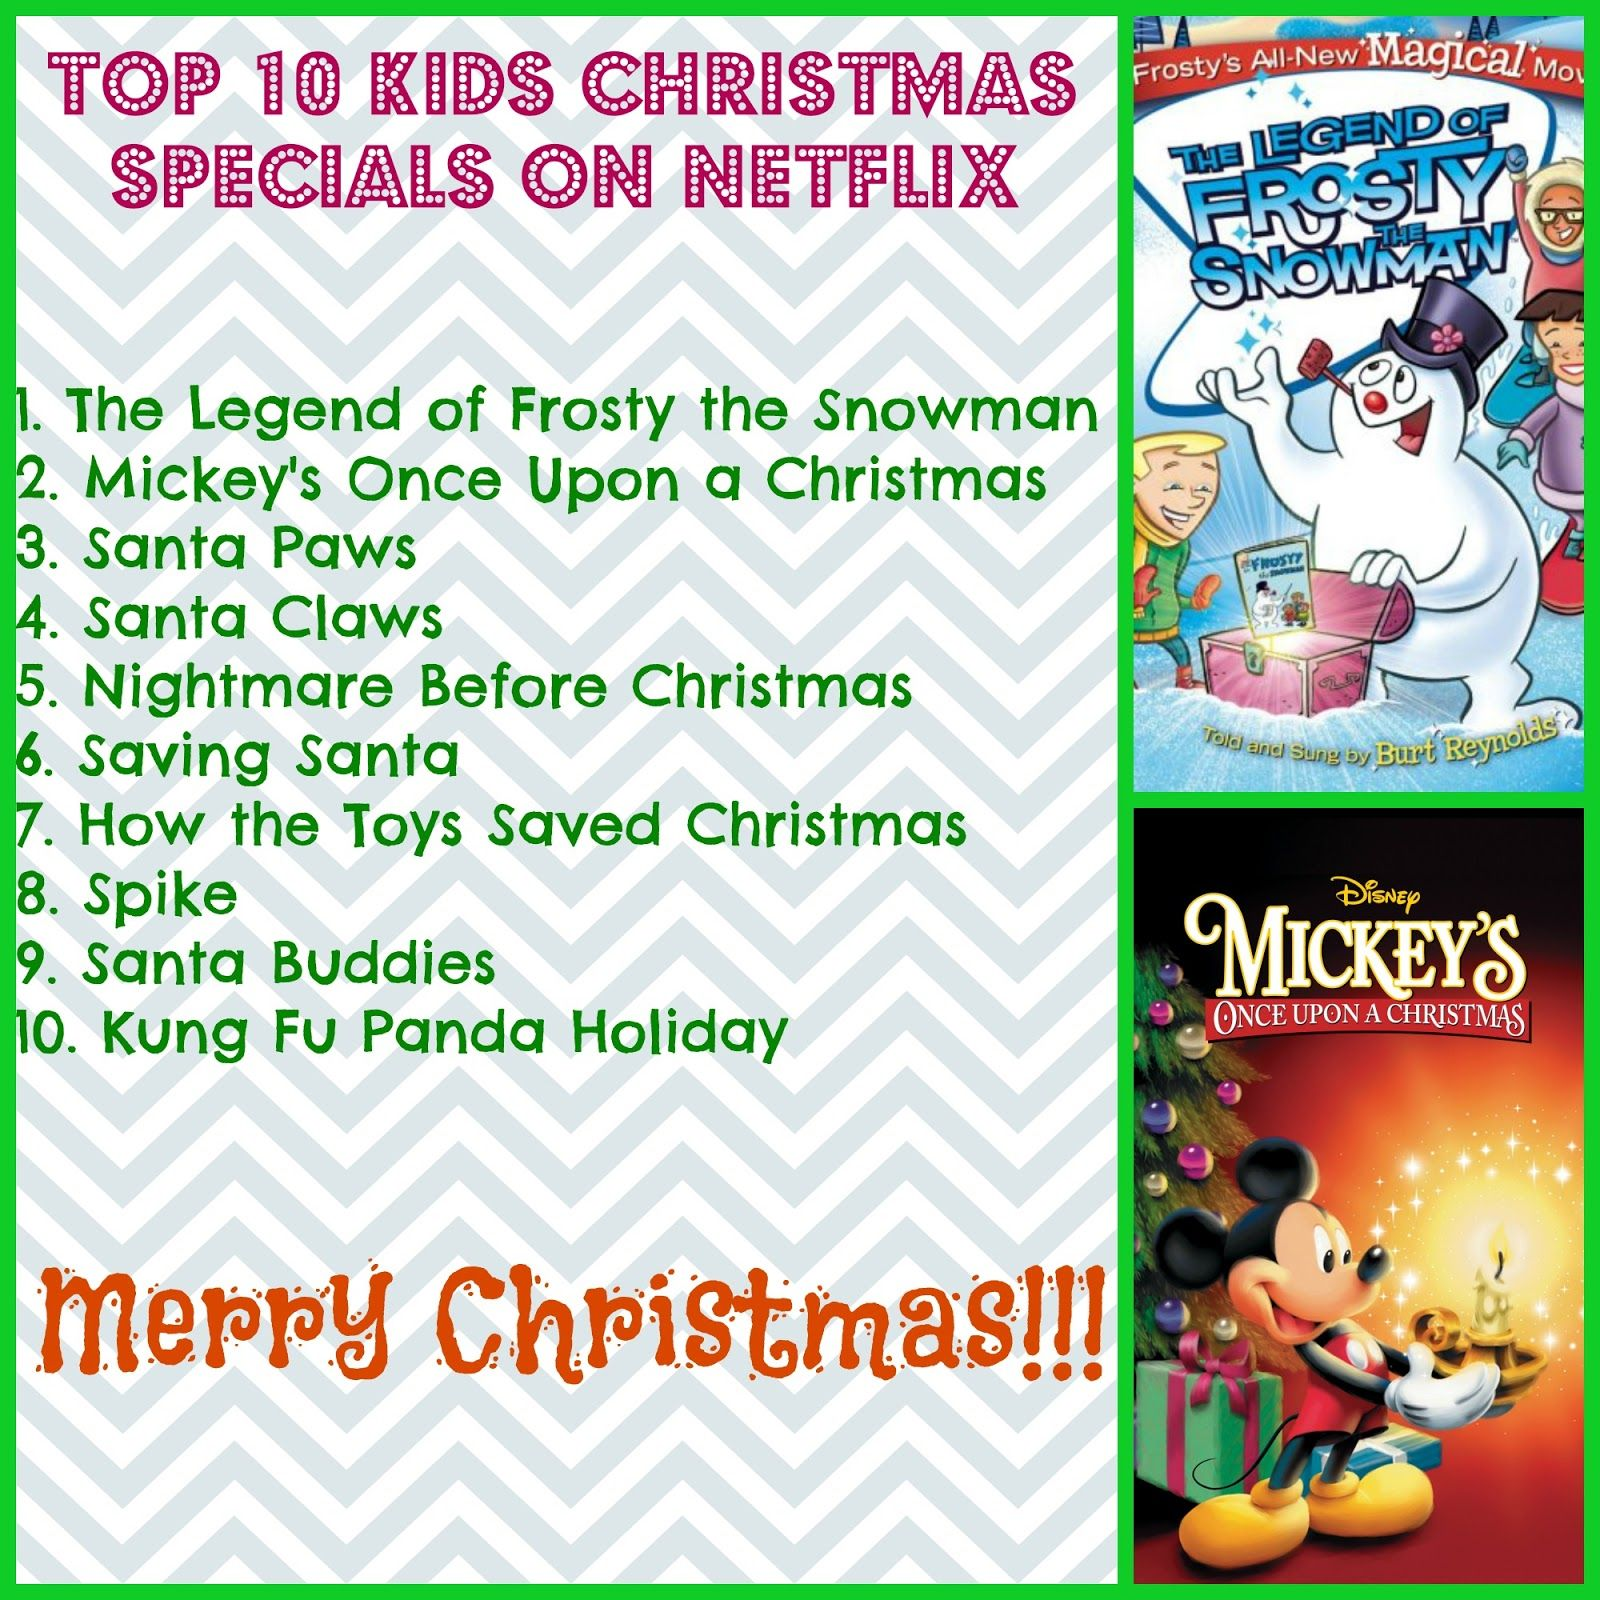 Top 10 Kids Christmas Specials on Netflix in 2015 | Christmas Crafts ...